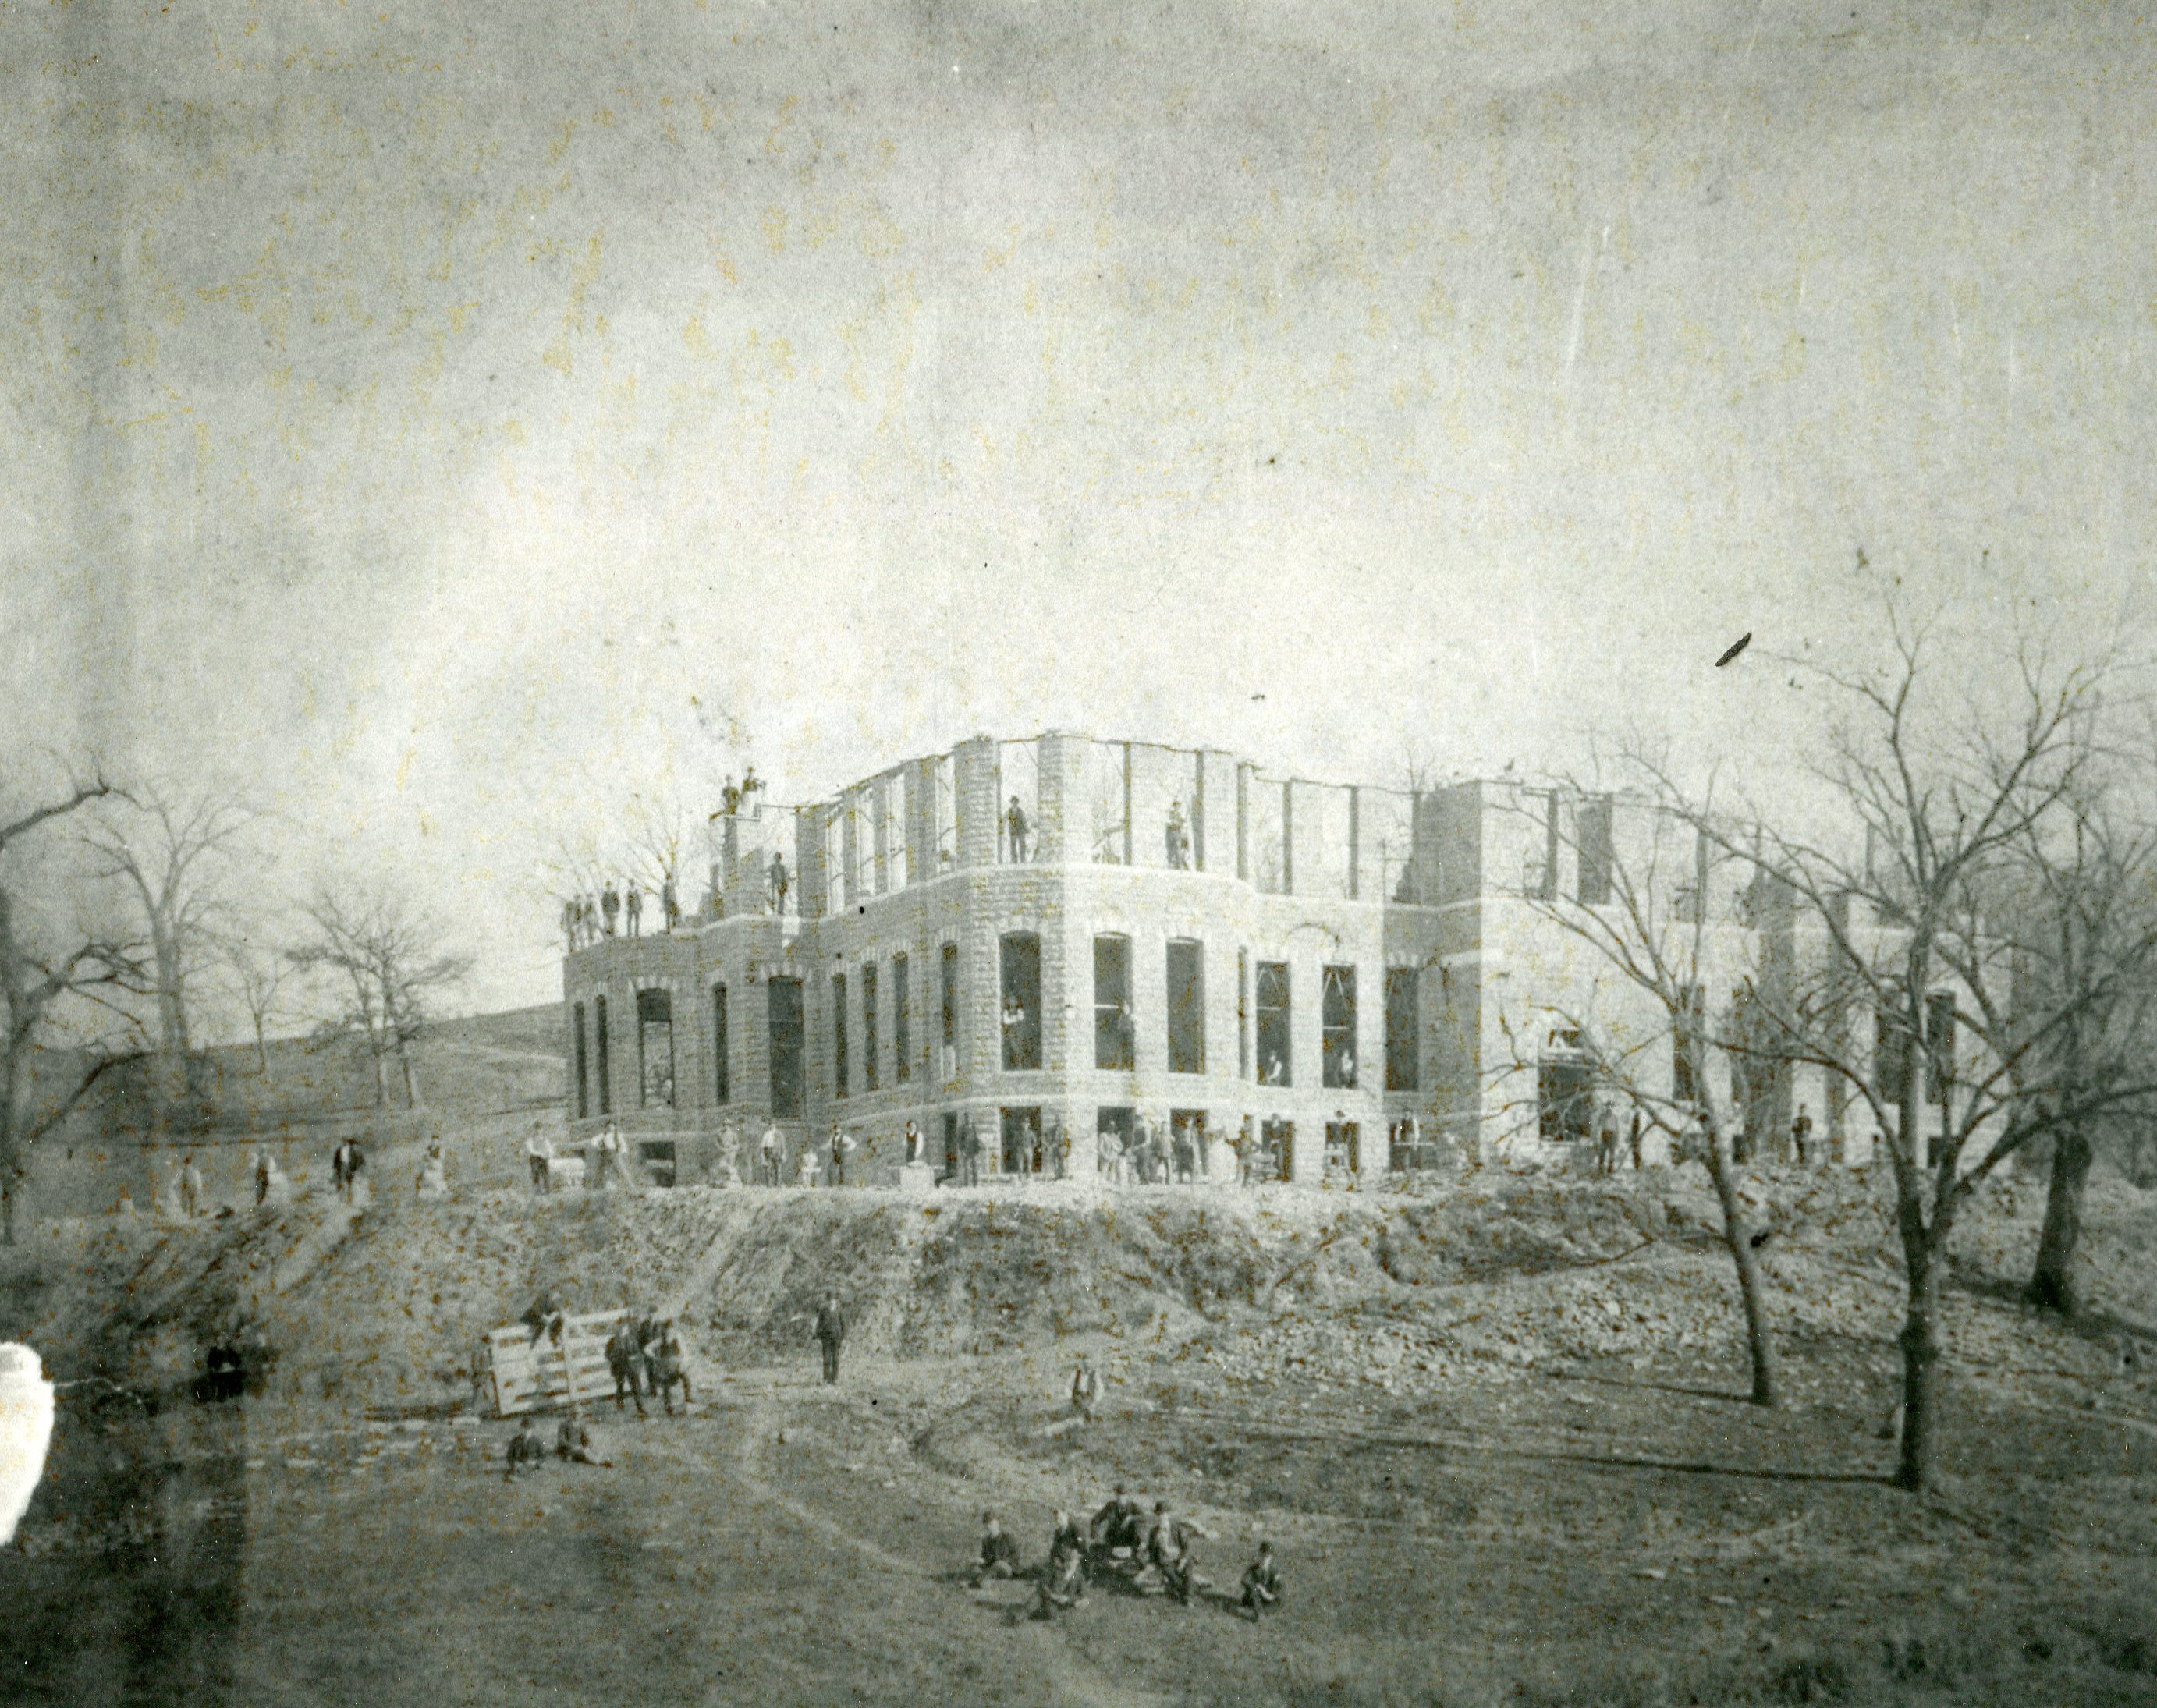 Mackay Hall under construction in 1889